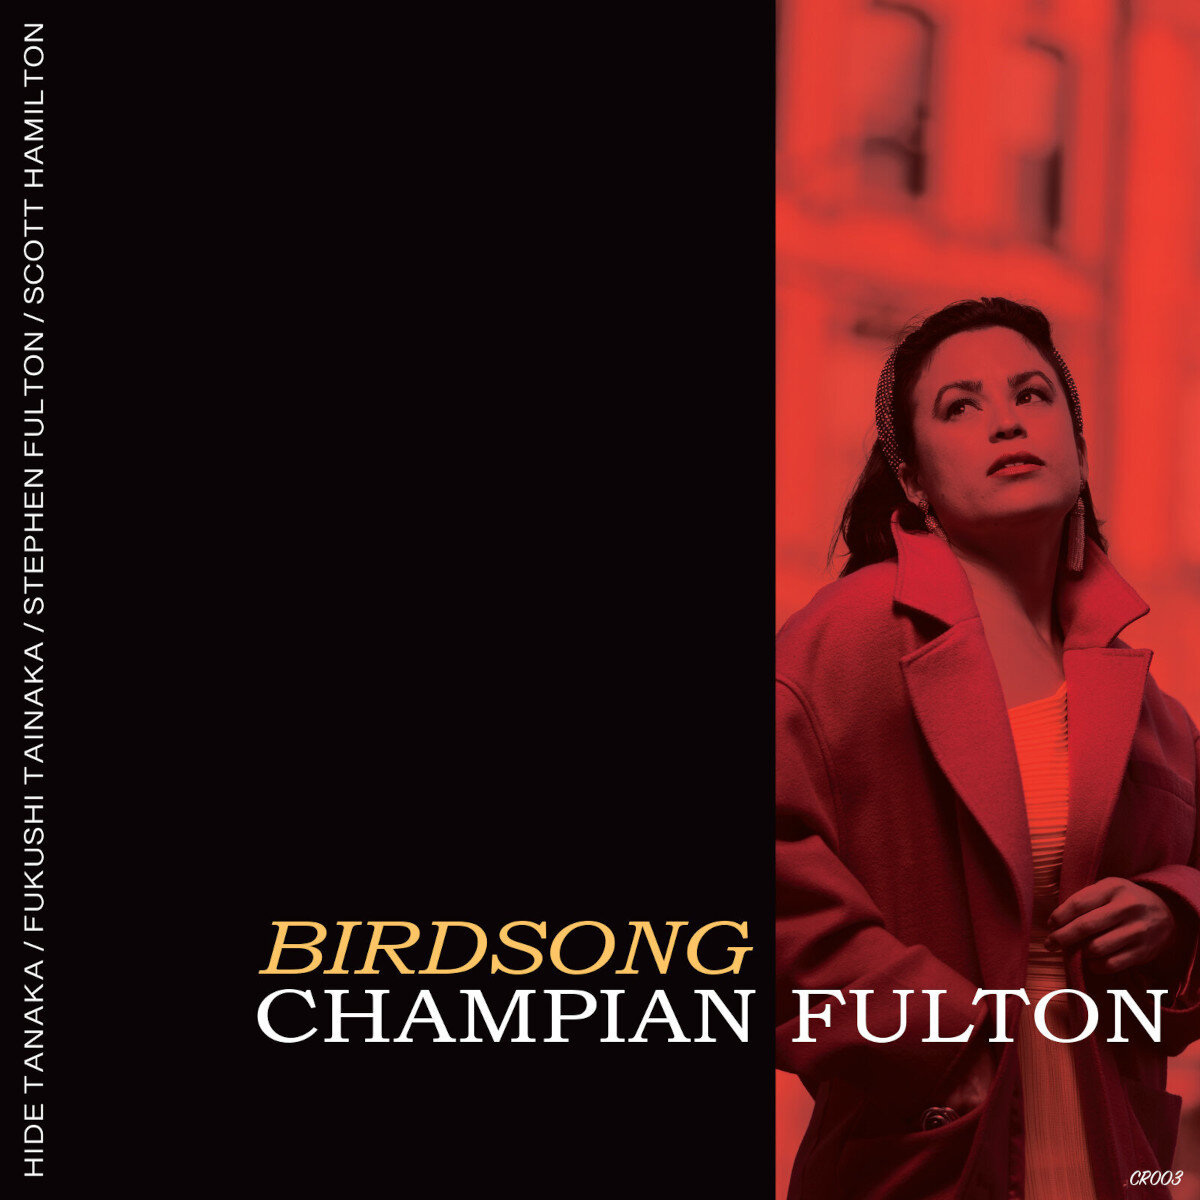 REVIEW: Champian Fulton's Birdsong — The Syncopated Times